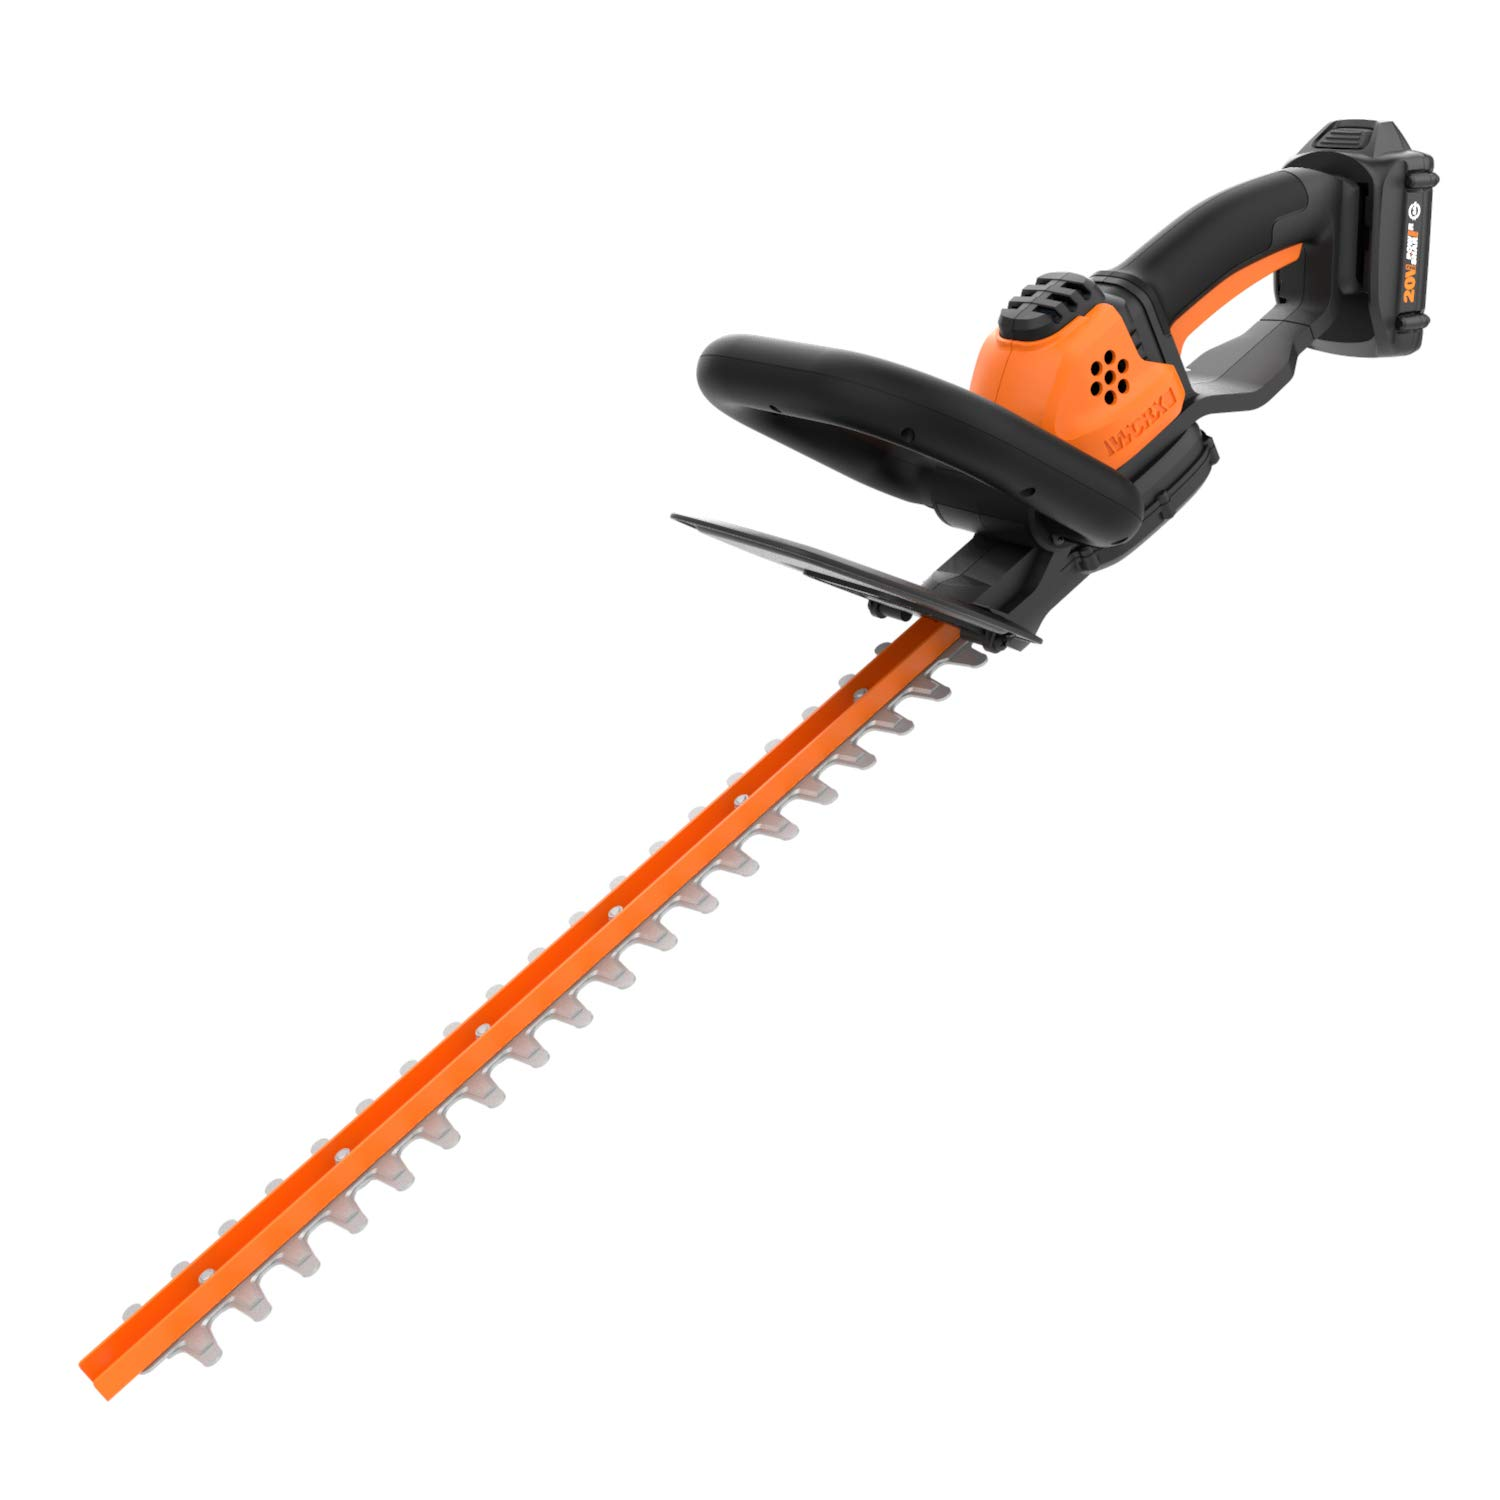 WORX WG261 20 inch Cordless included